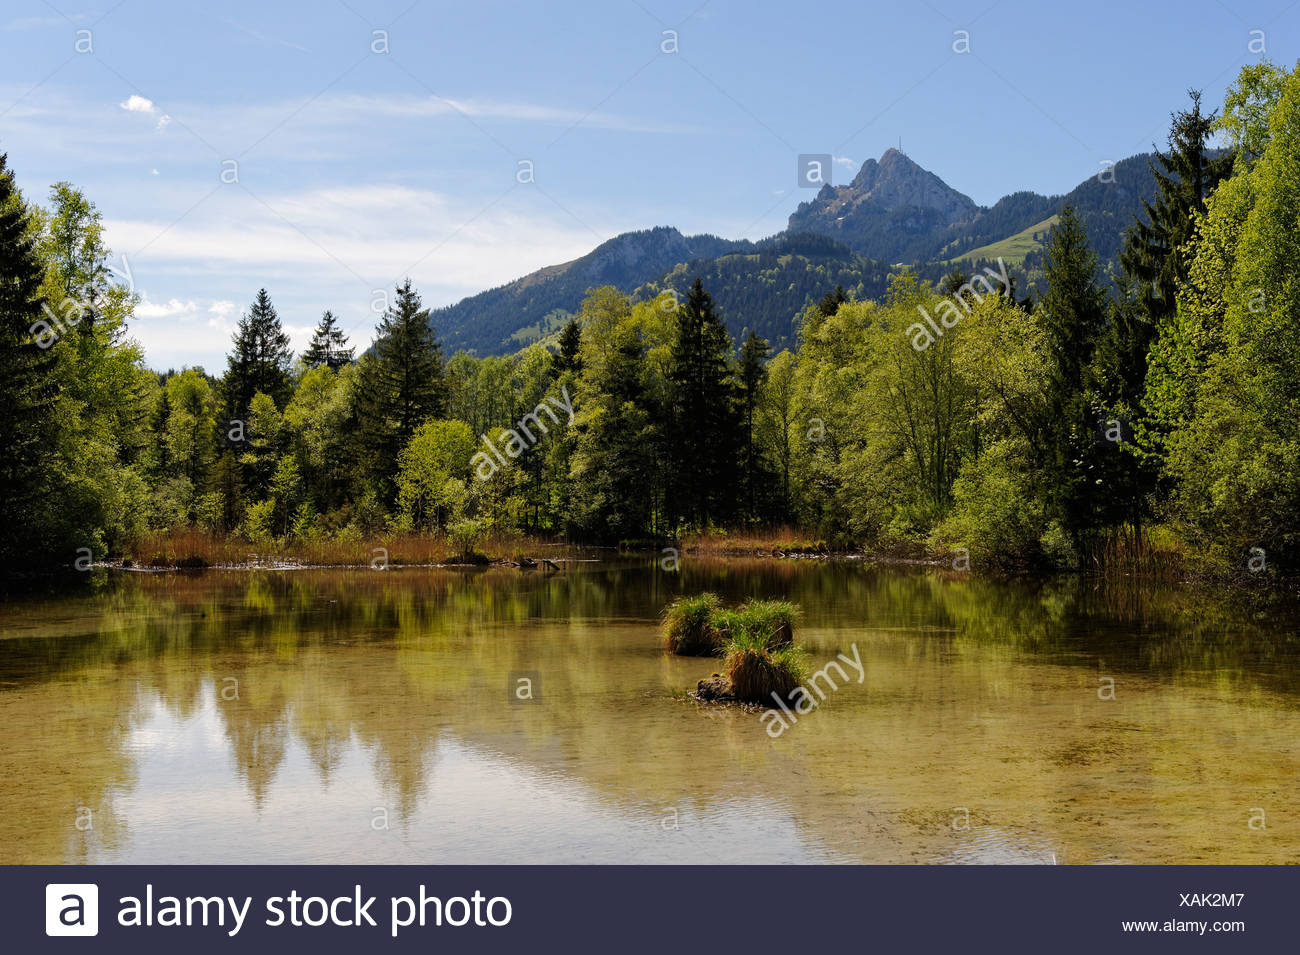 Lake Quellsee in spring, Wendelstein mountain at the back, landscape near Hammer in the Leitzachtal valley, near Bayrischzell - Stock Image